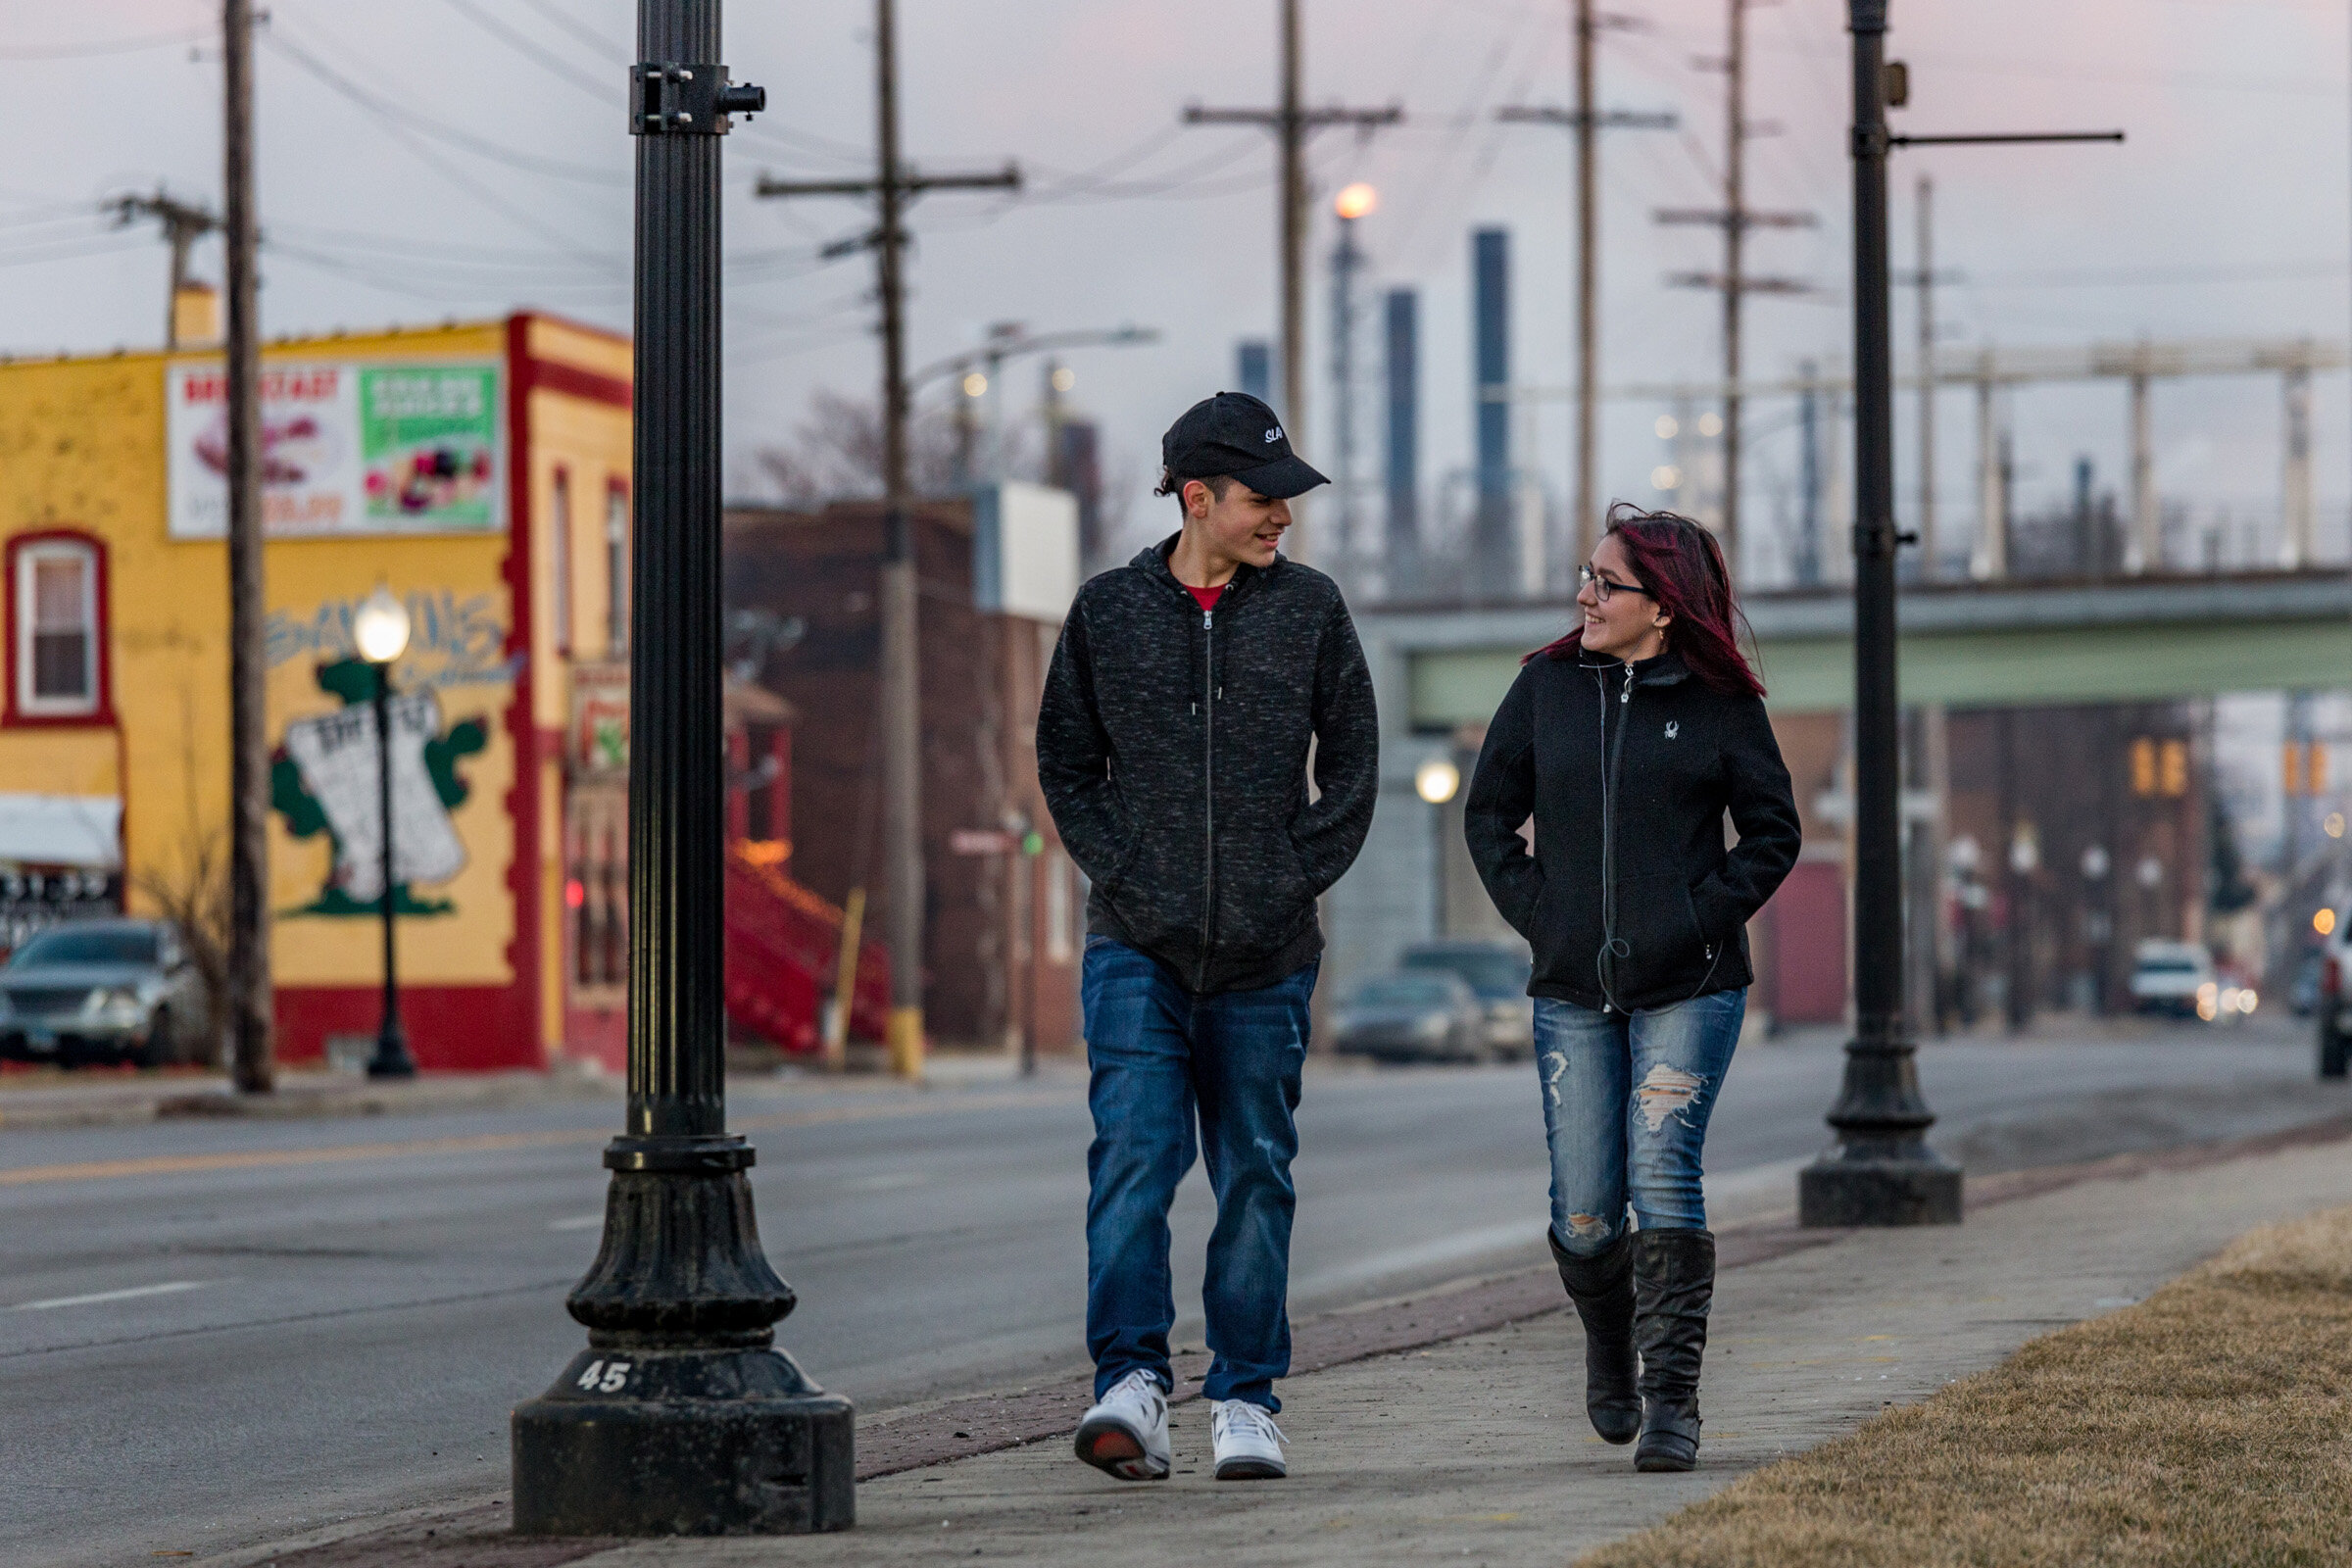 Figure 20. Teens in Whiting, near the BP Refinery, February 2019. Photograph by Matthew Kaplan.